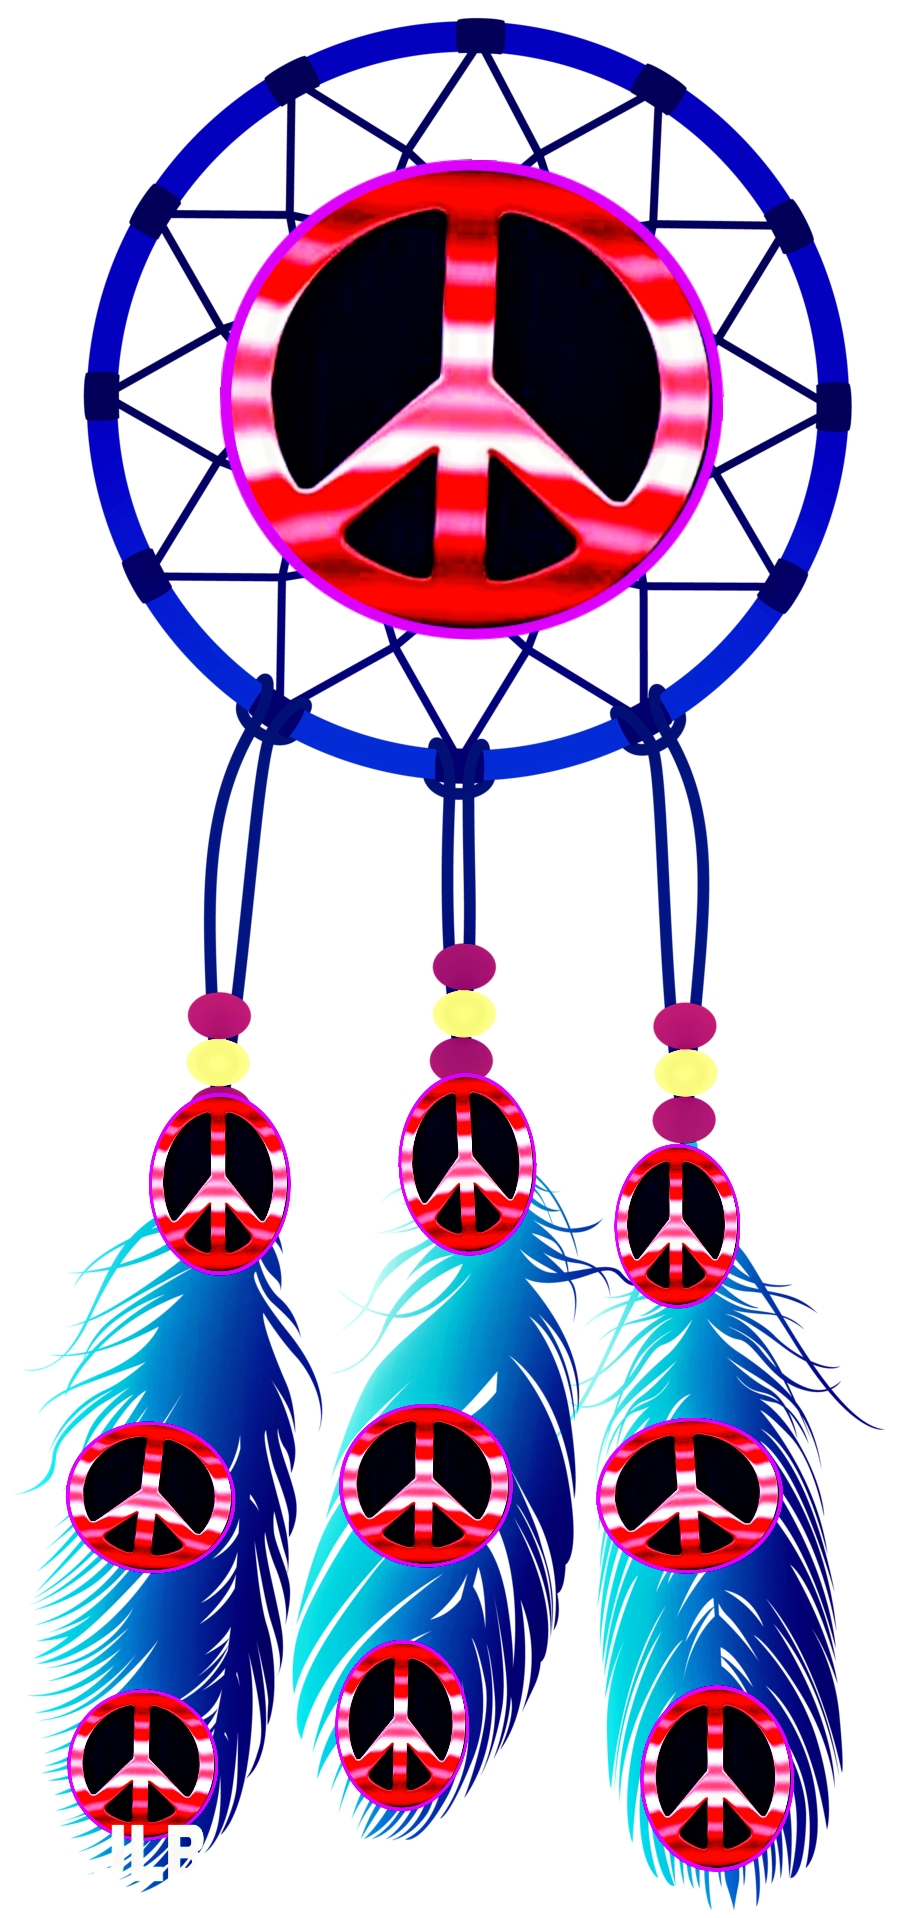 svg royalty free library Drawing mushroom hippie.  dreamcatcher jlb bo.